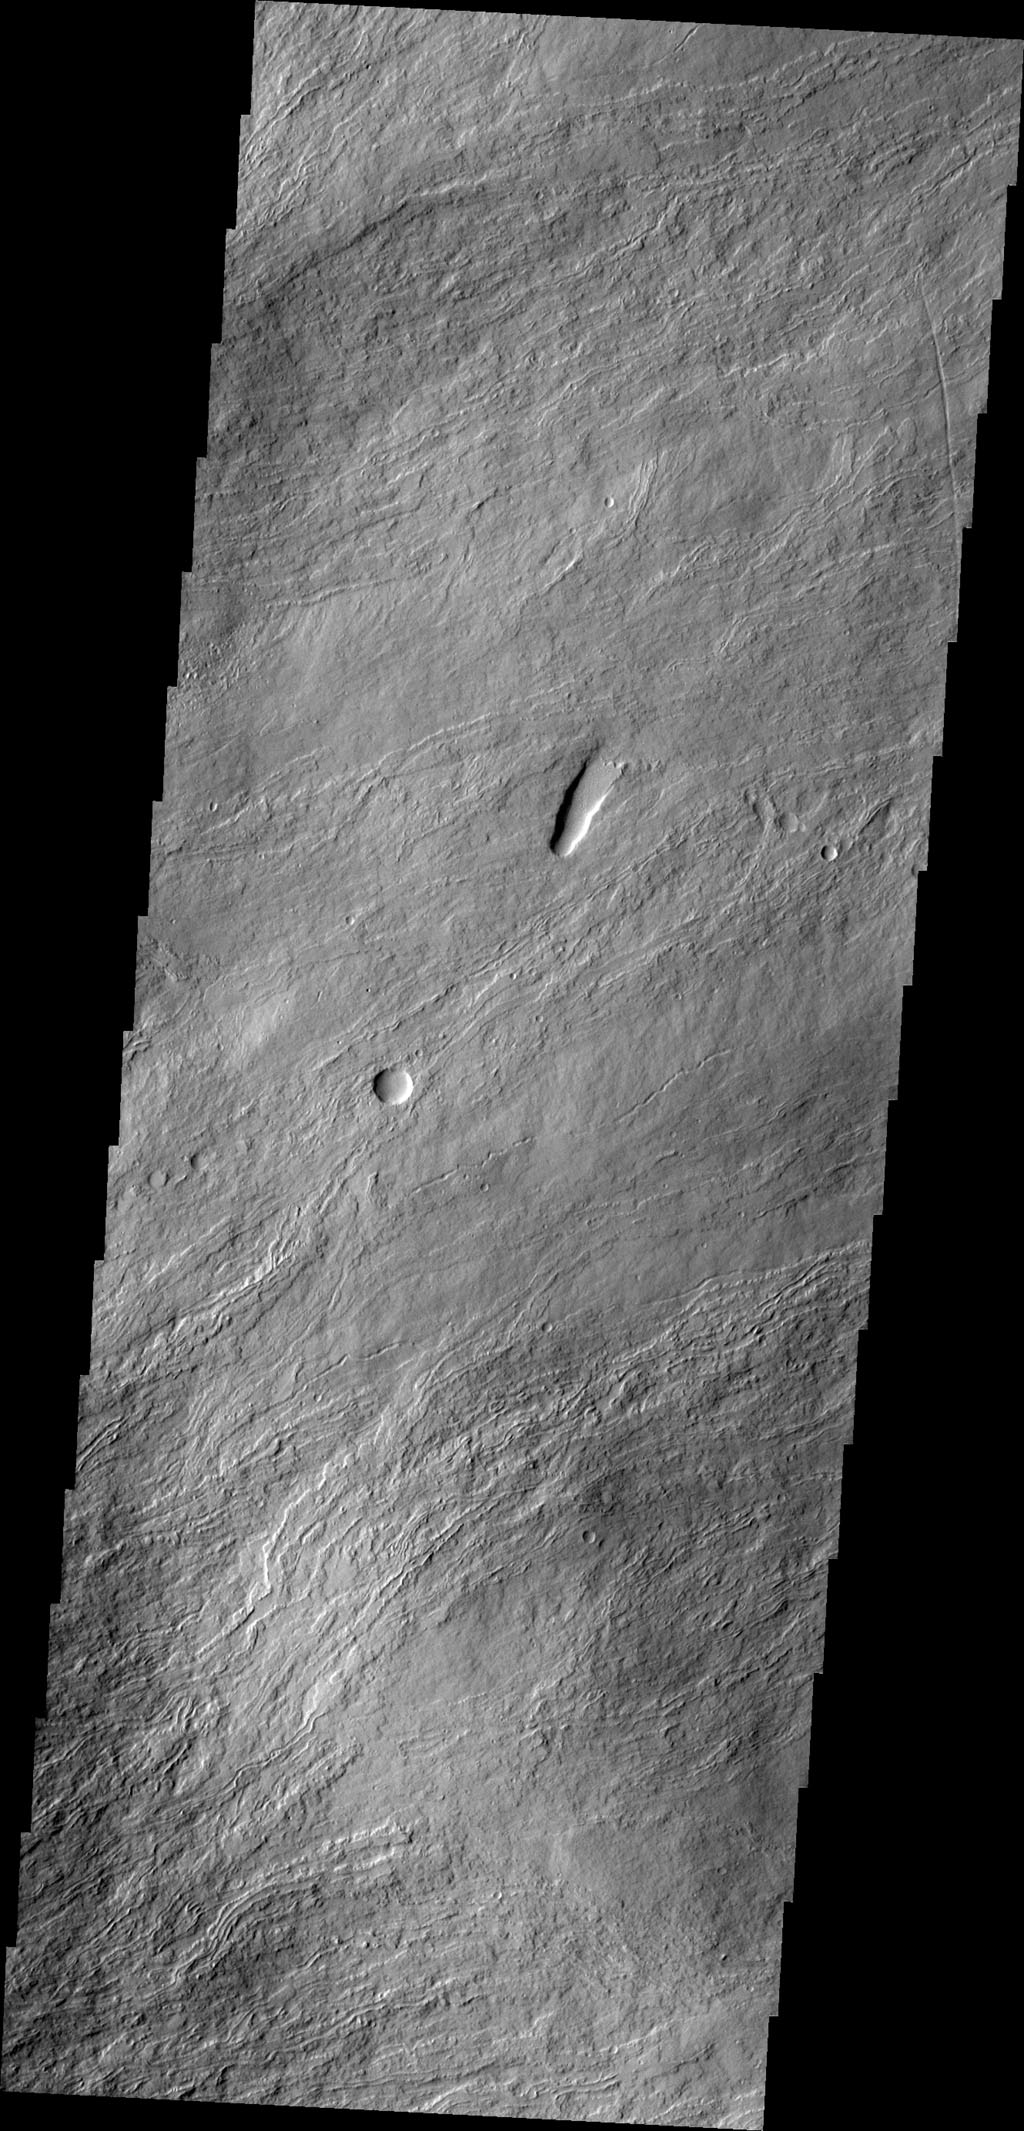 The narrow volcanic flows in this image captured by NASA's 2001 Mars Odyssey spacecraft are located on the northeastern flank of Olympus Mons.